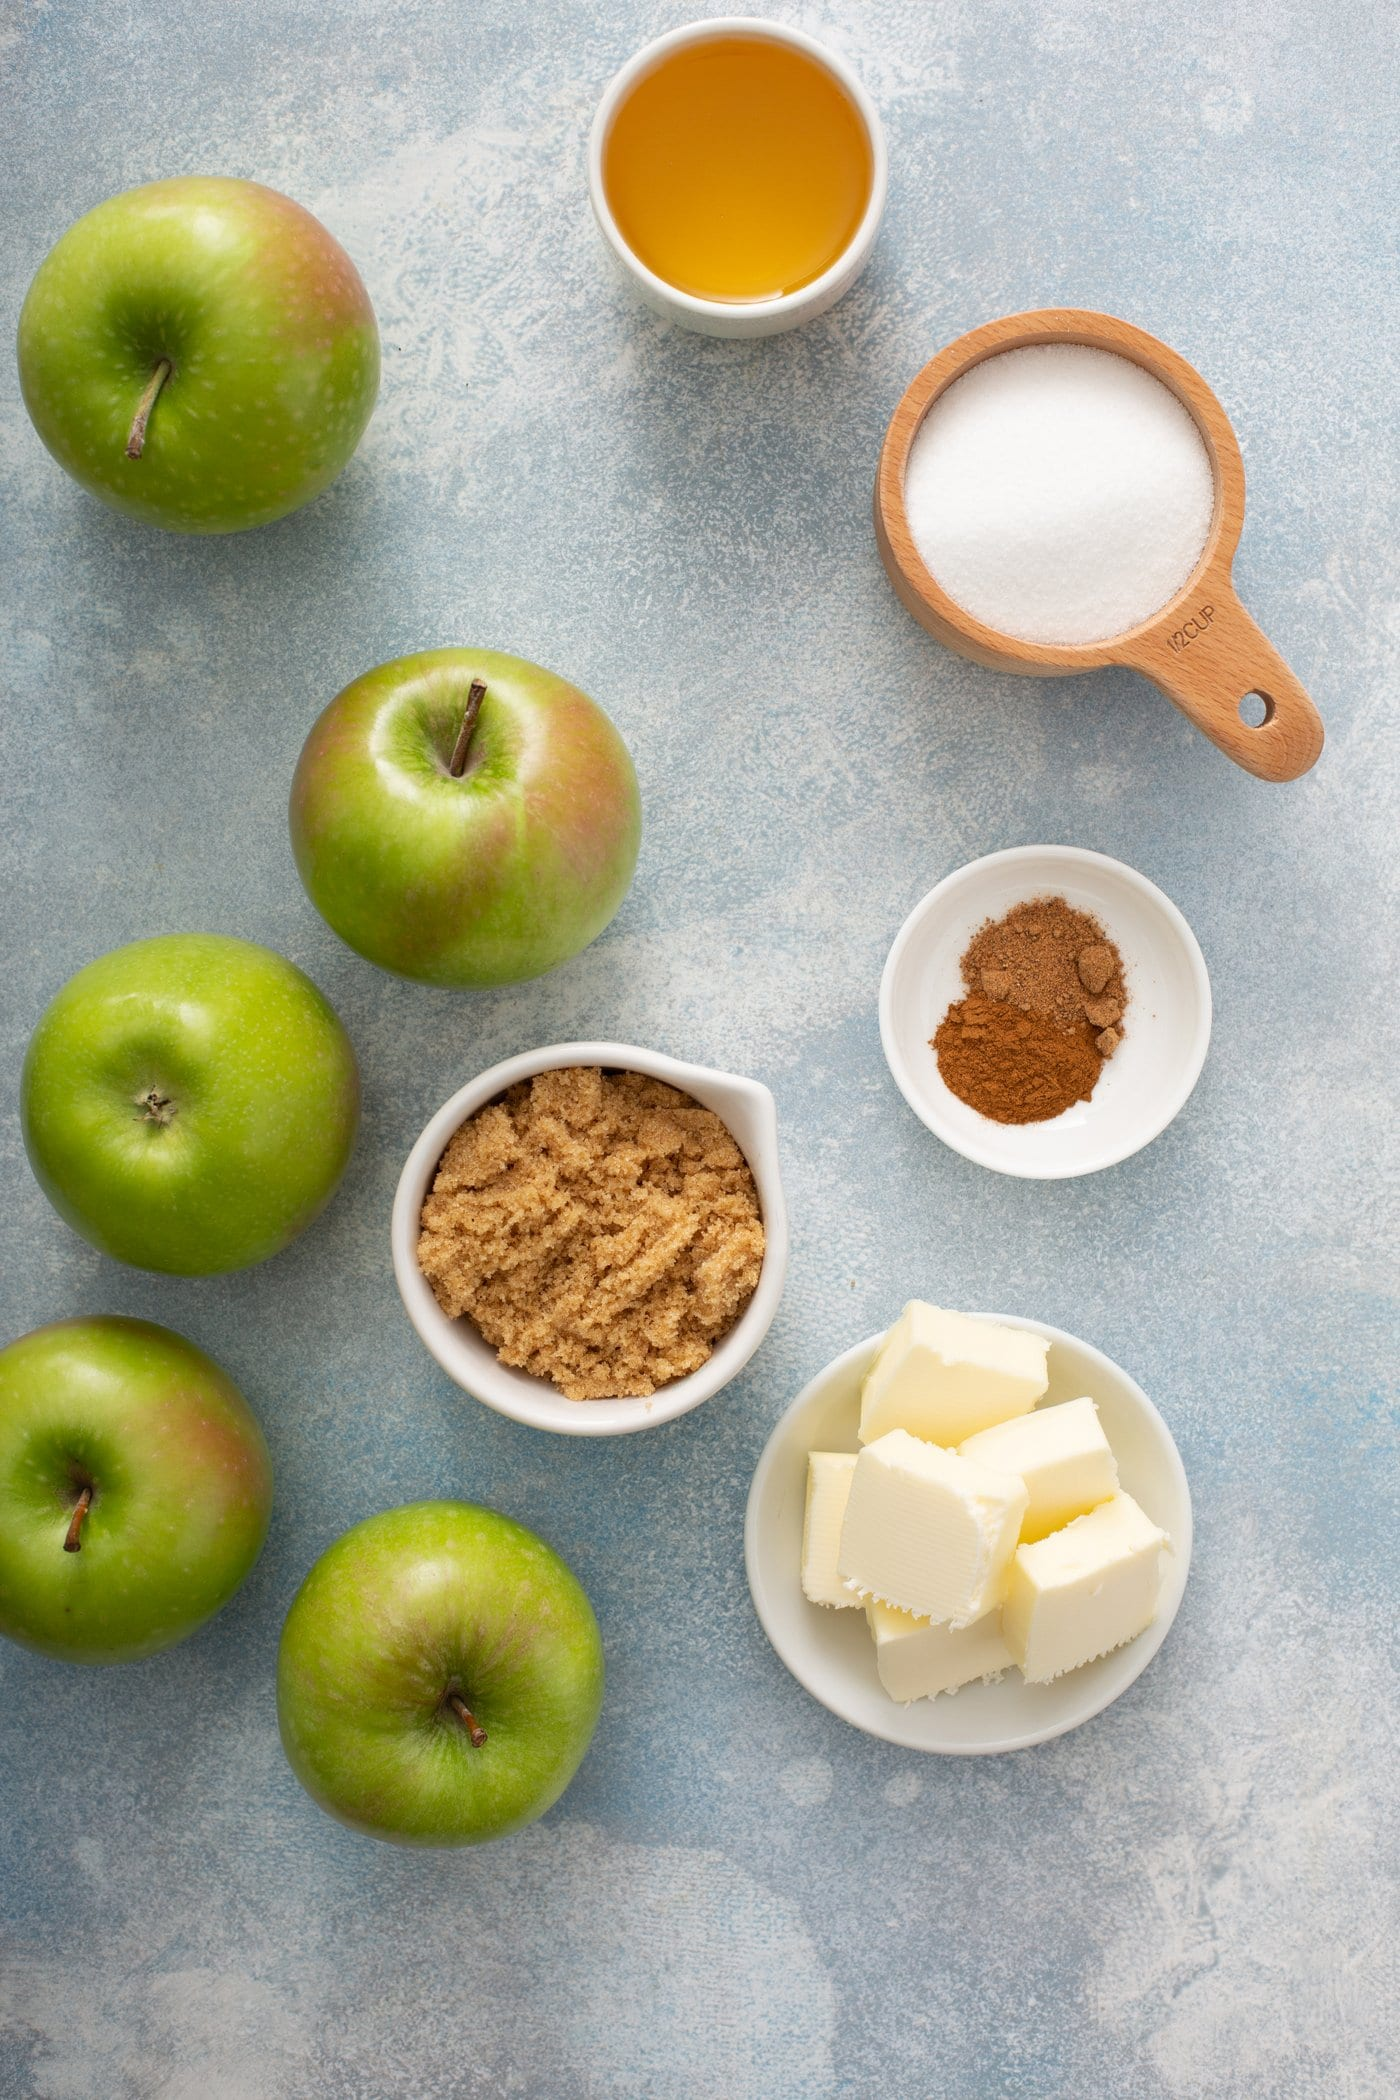 5 green apples, and containers of cubed butter, cinnamon, bread crumbs, and sugar.